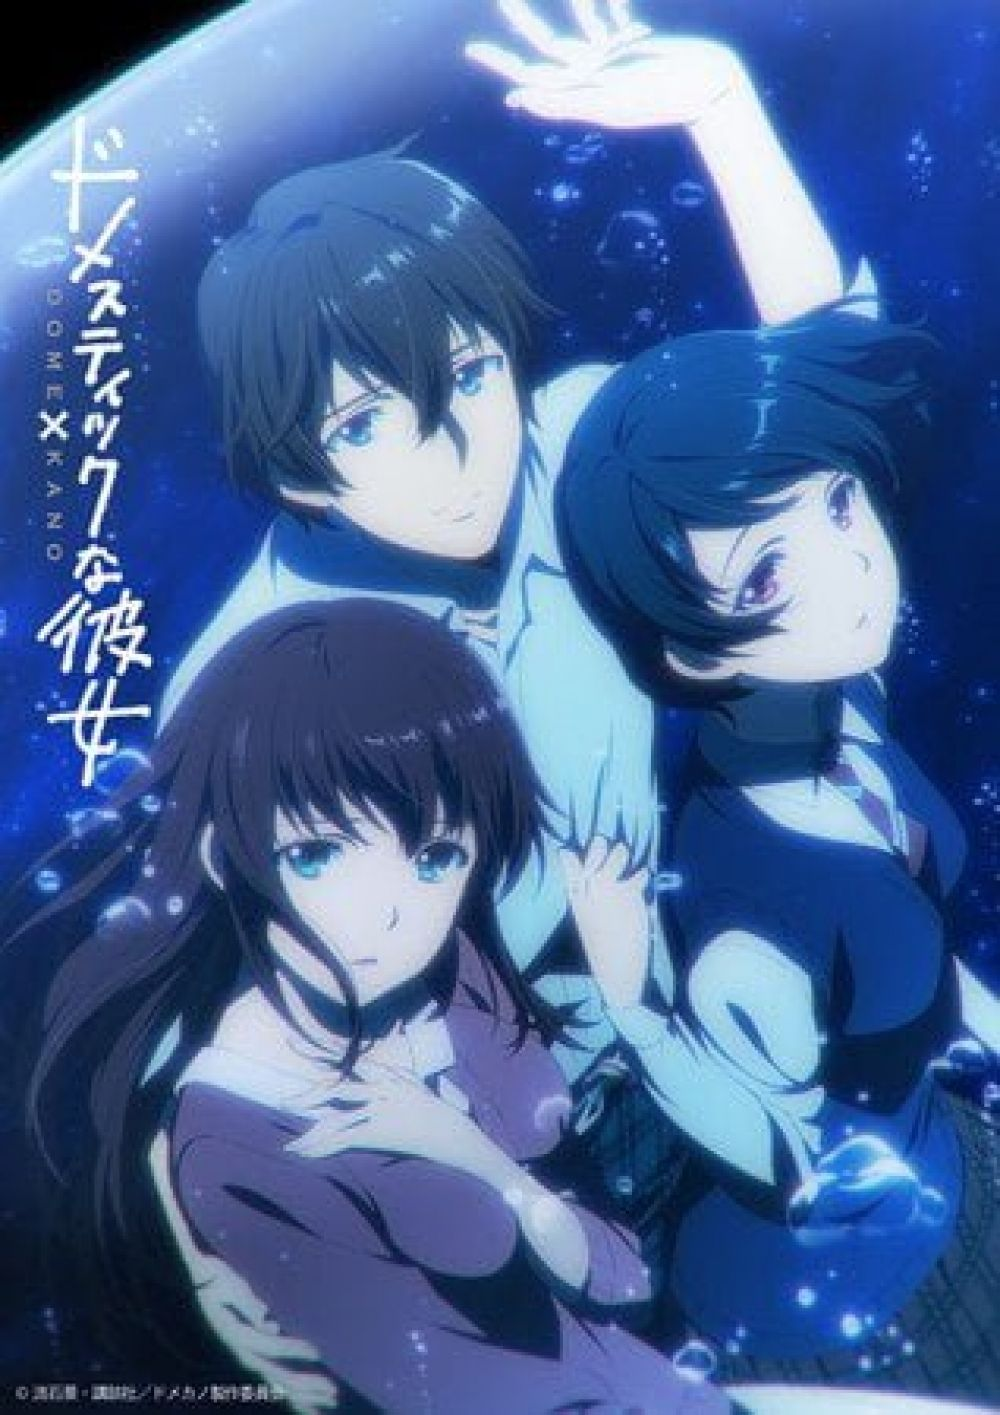 Crunchyroll Adds Domestic Girlfriend, W'z, The Magnificent